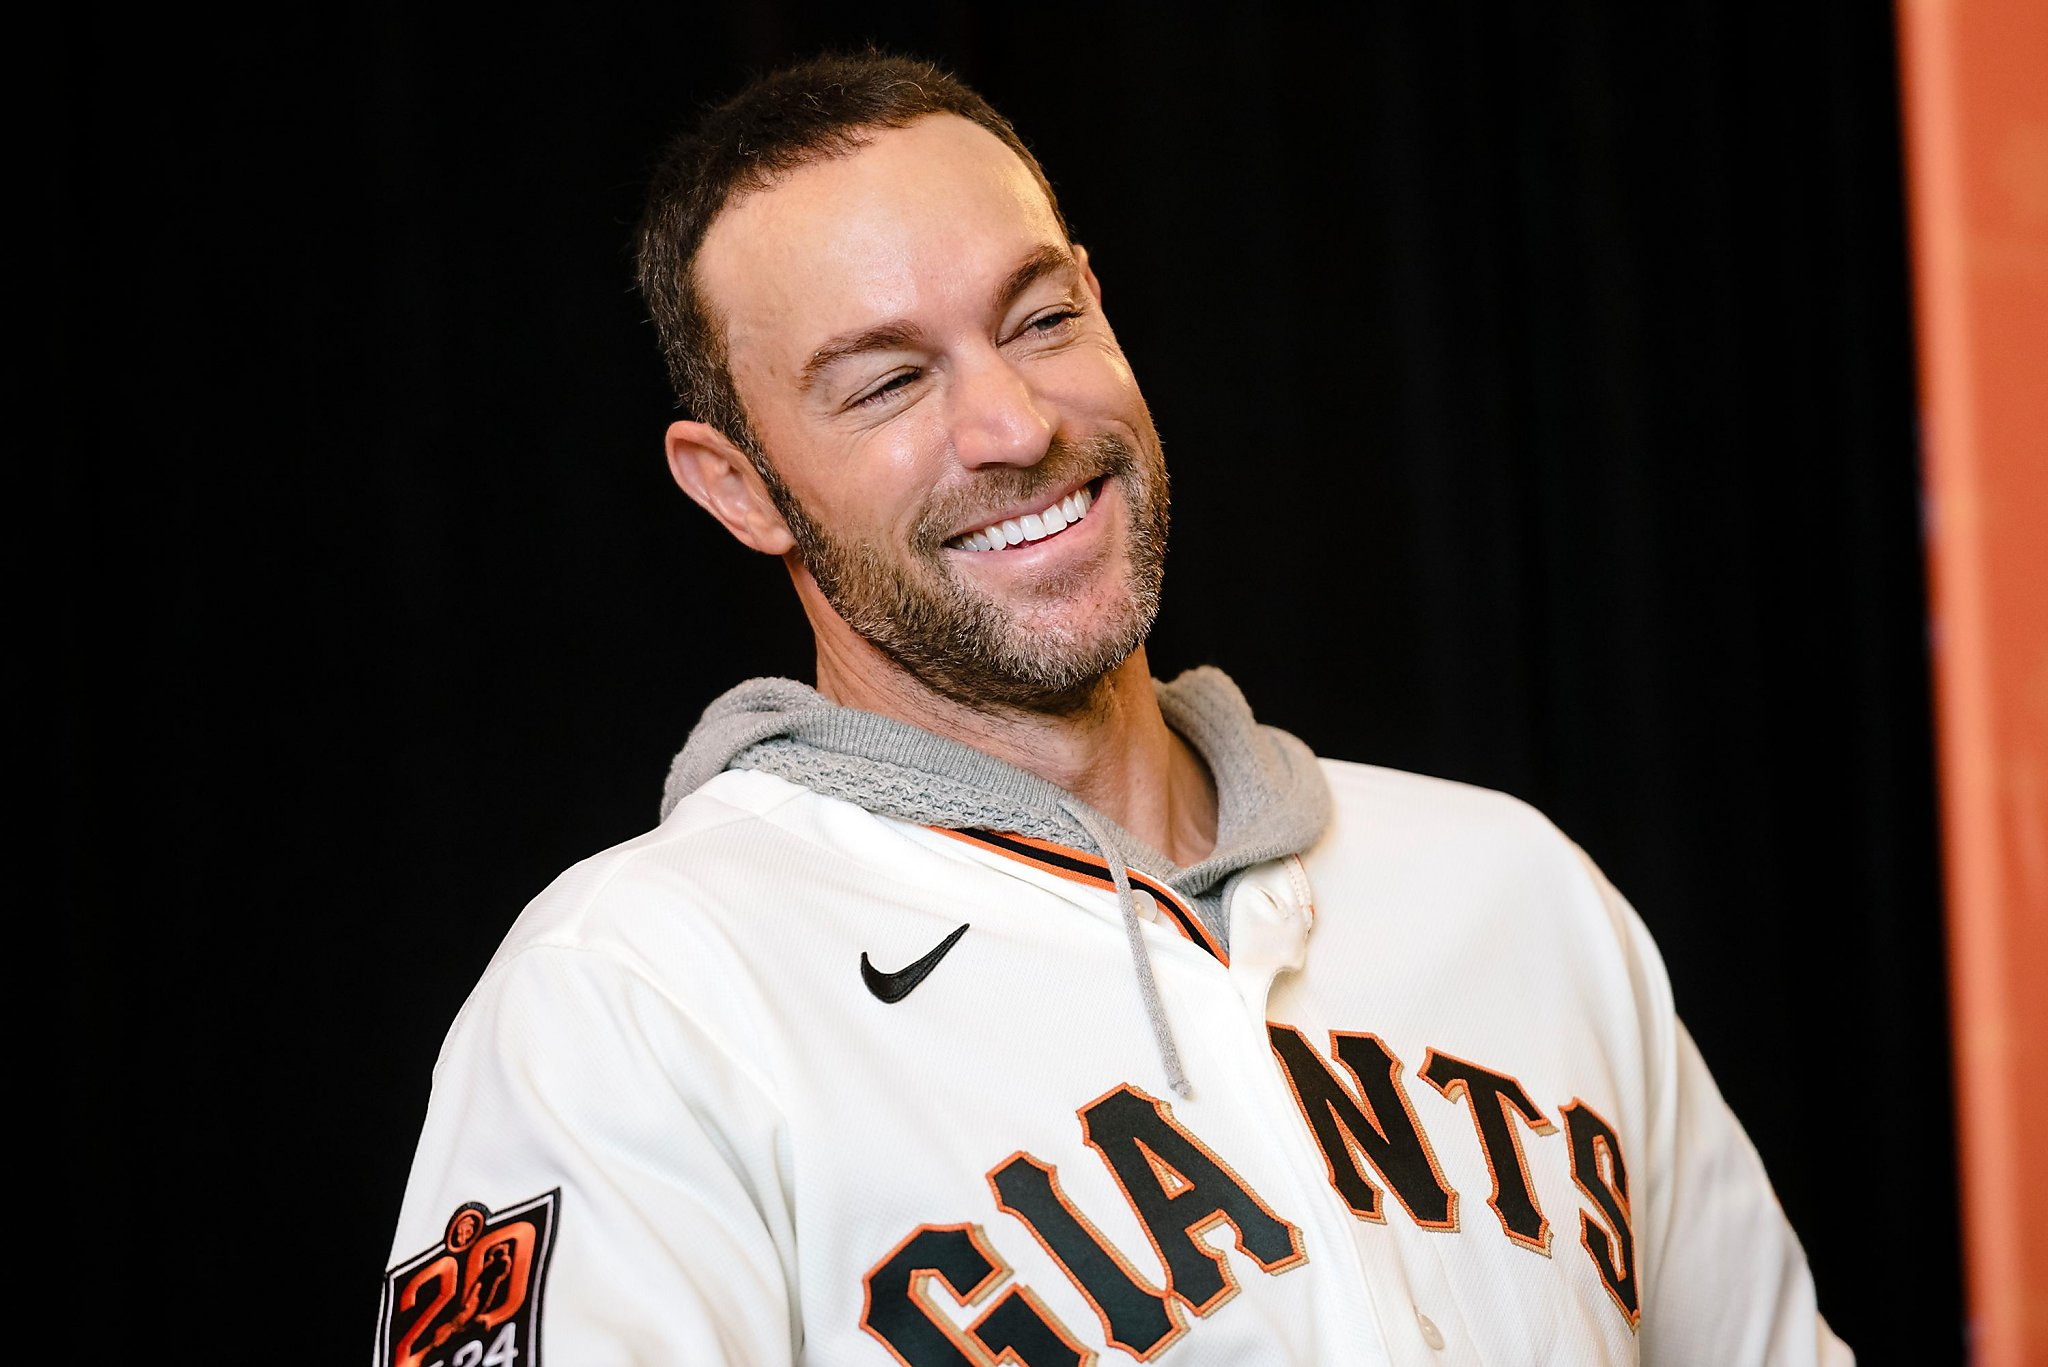 Giants' new manager Gabe Kapler and his staff eschew the chew and the brews